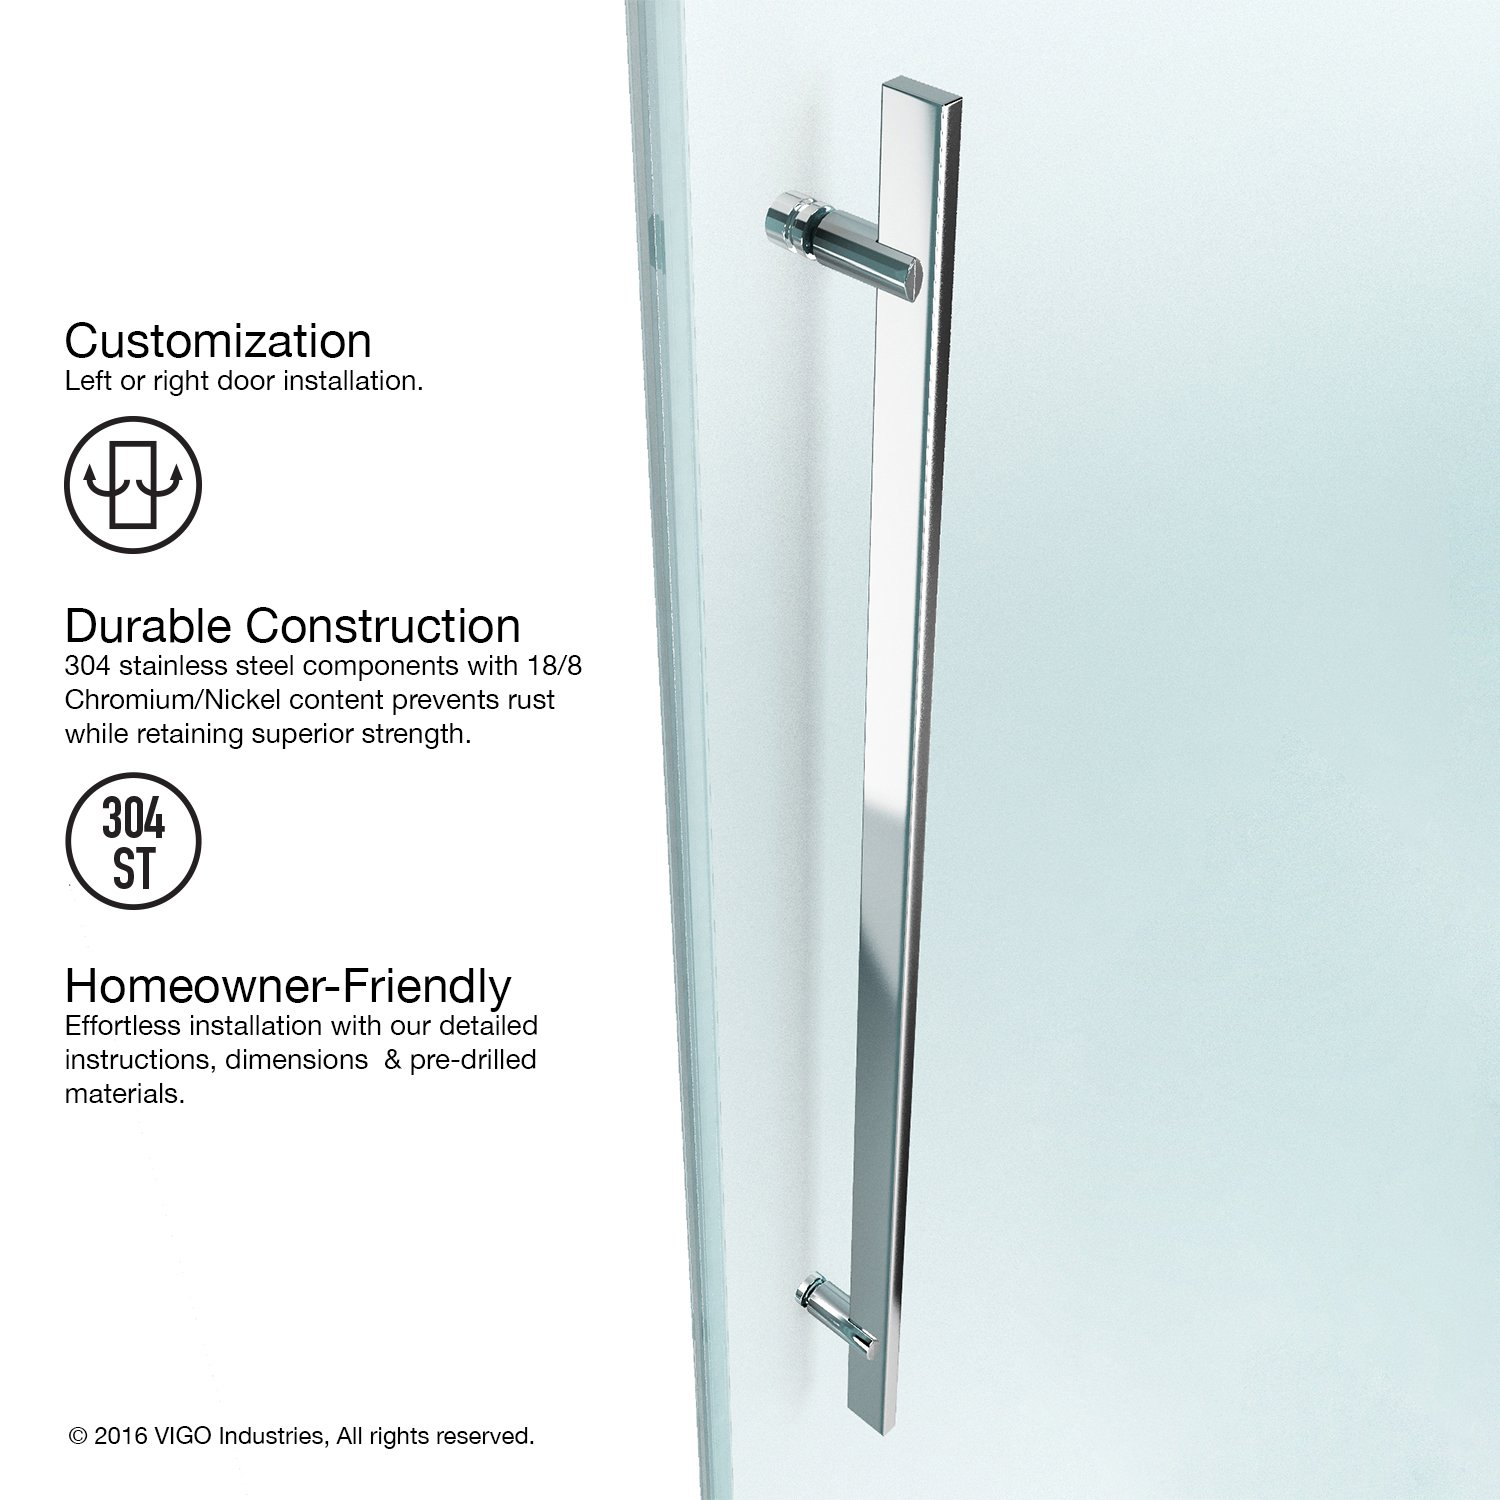 VIGO Luca 56 to 60-in. Frameless Sliding Shower Door with .375-in. Clear Glass and Chrome Hardware by Vigo (Image #2)